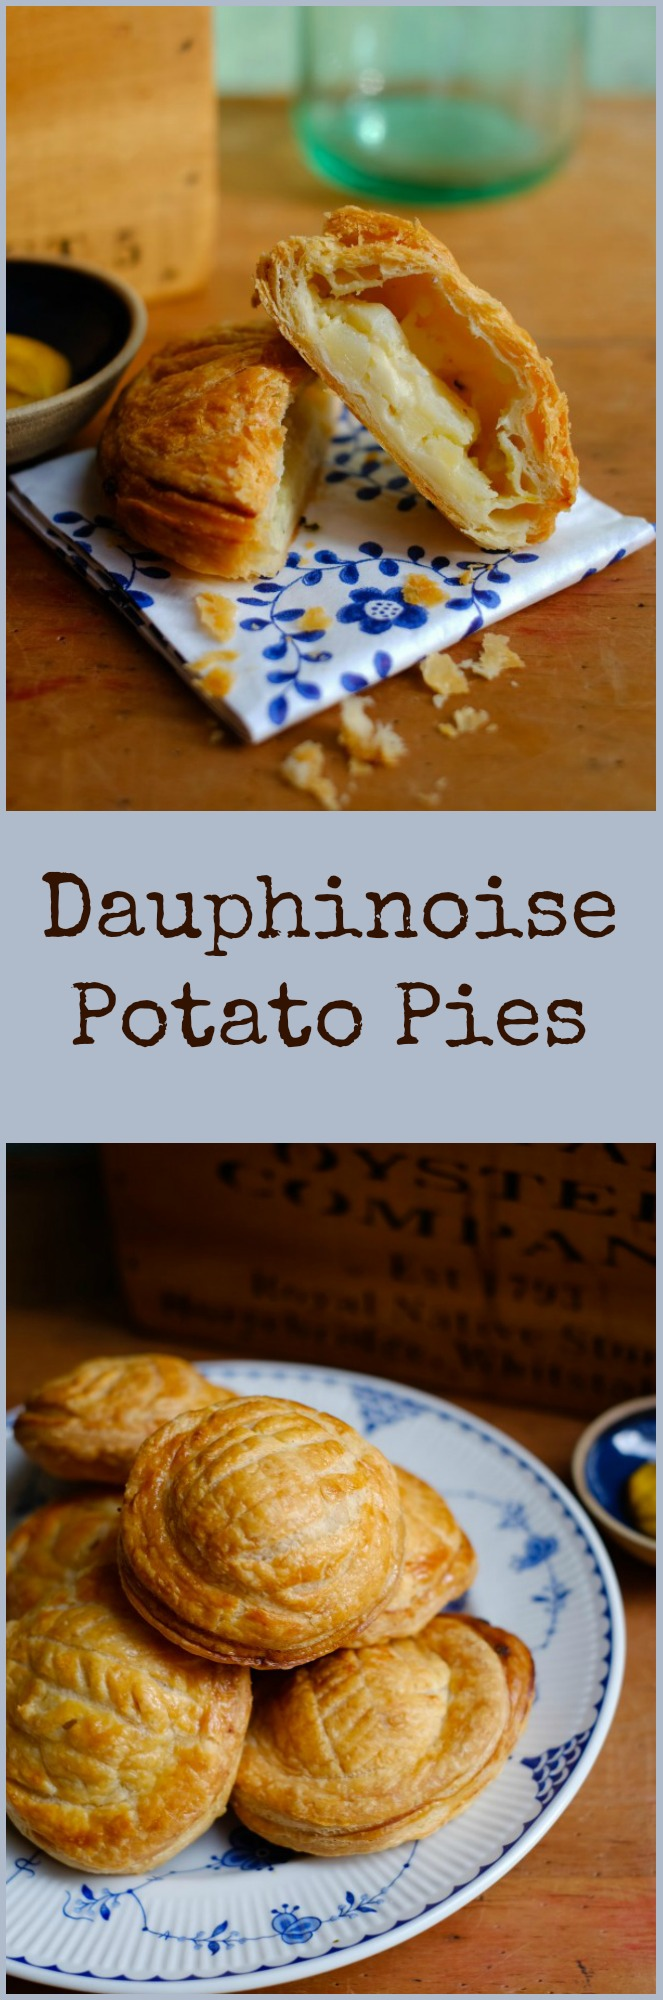 Dauphinoise Potato Pies | Patisserie Makes Perfect